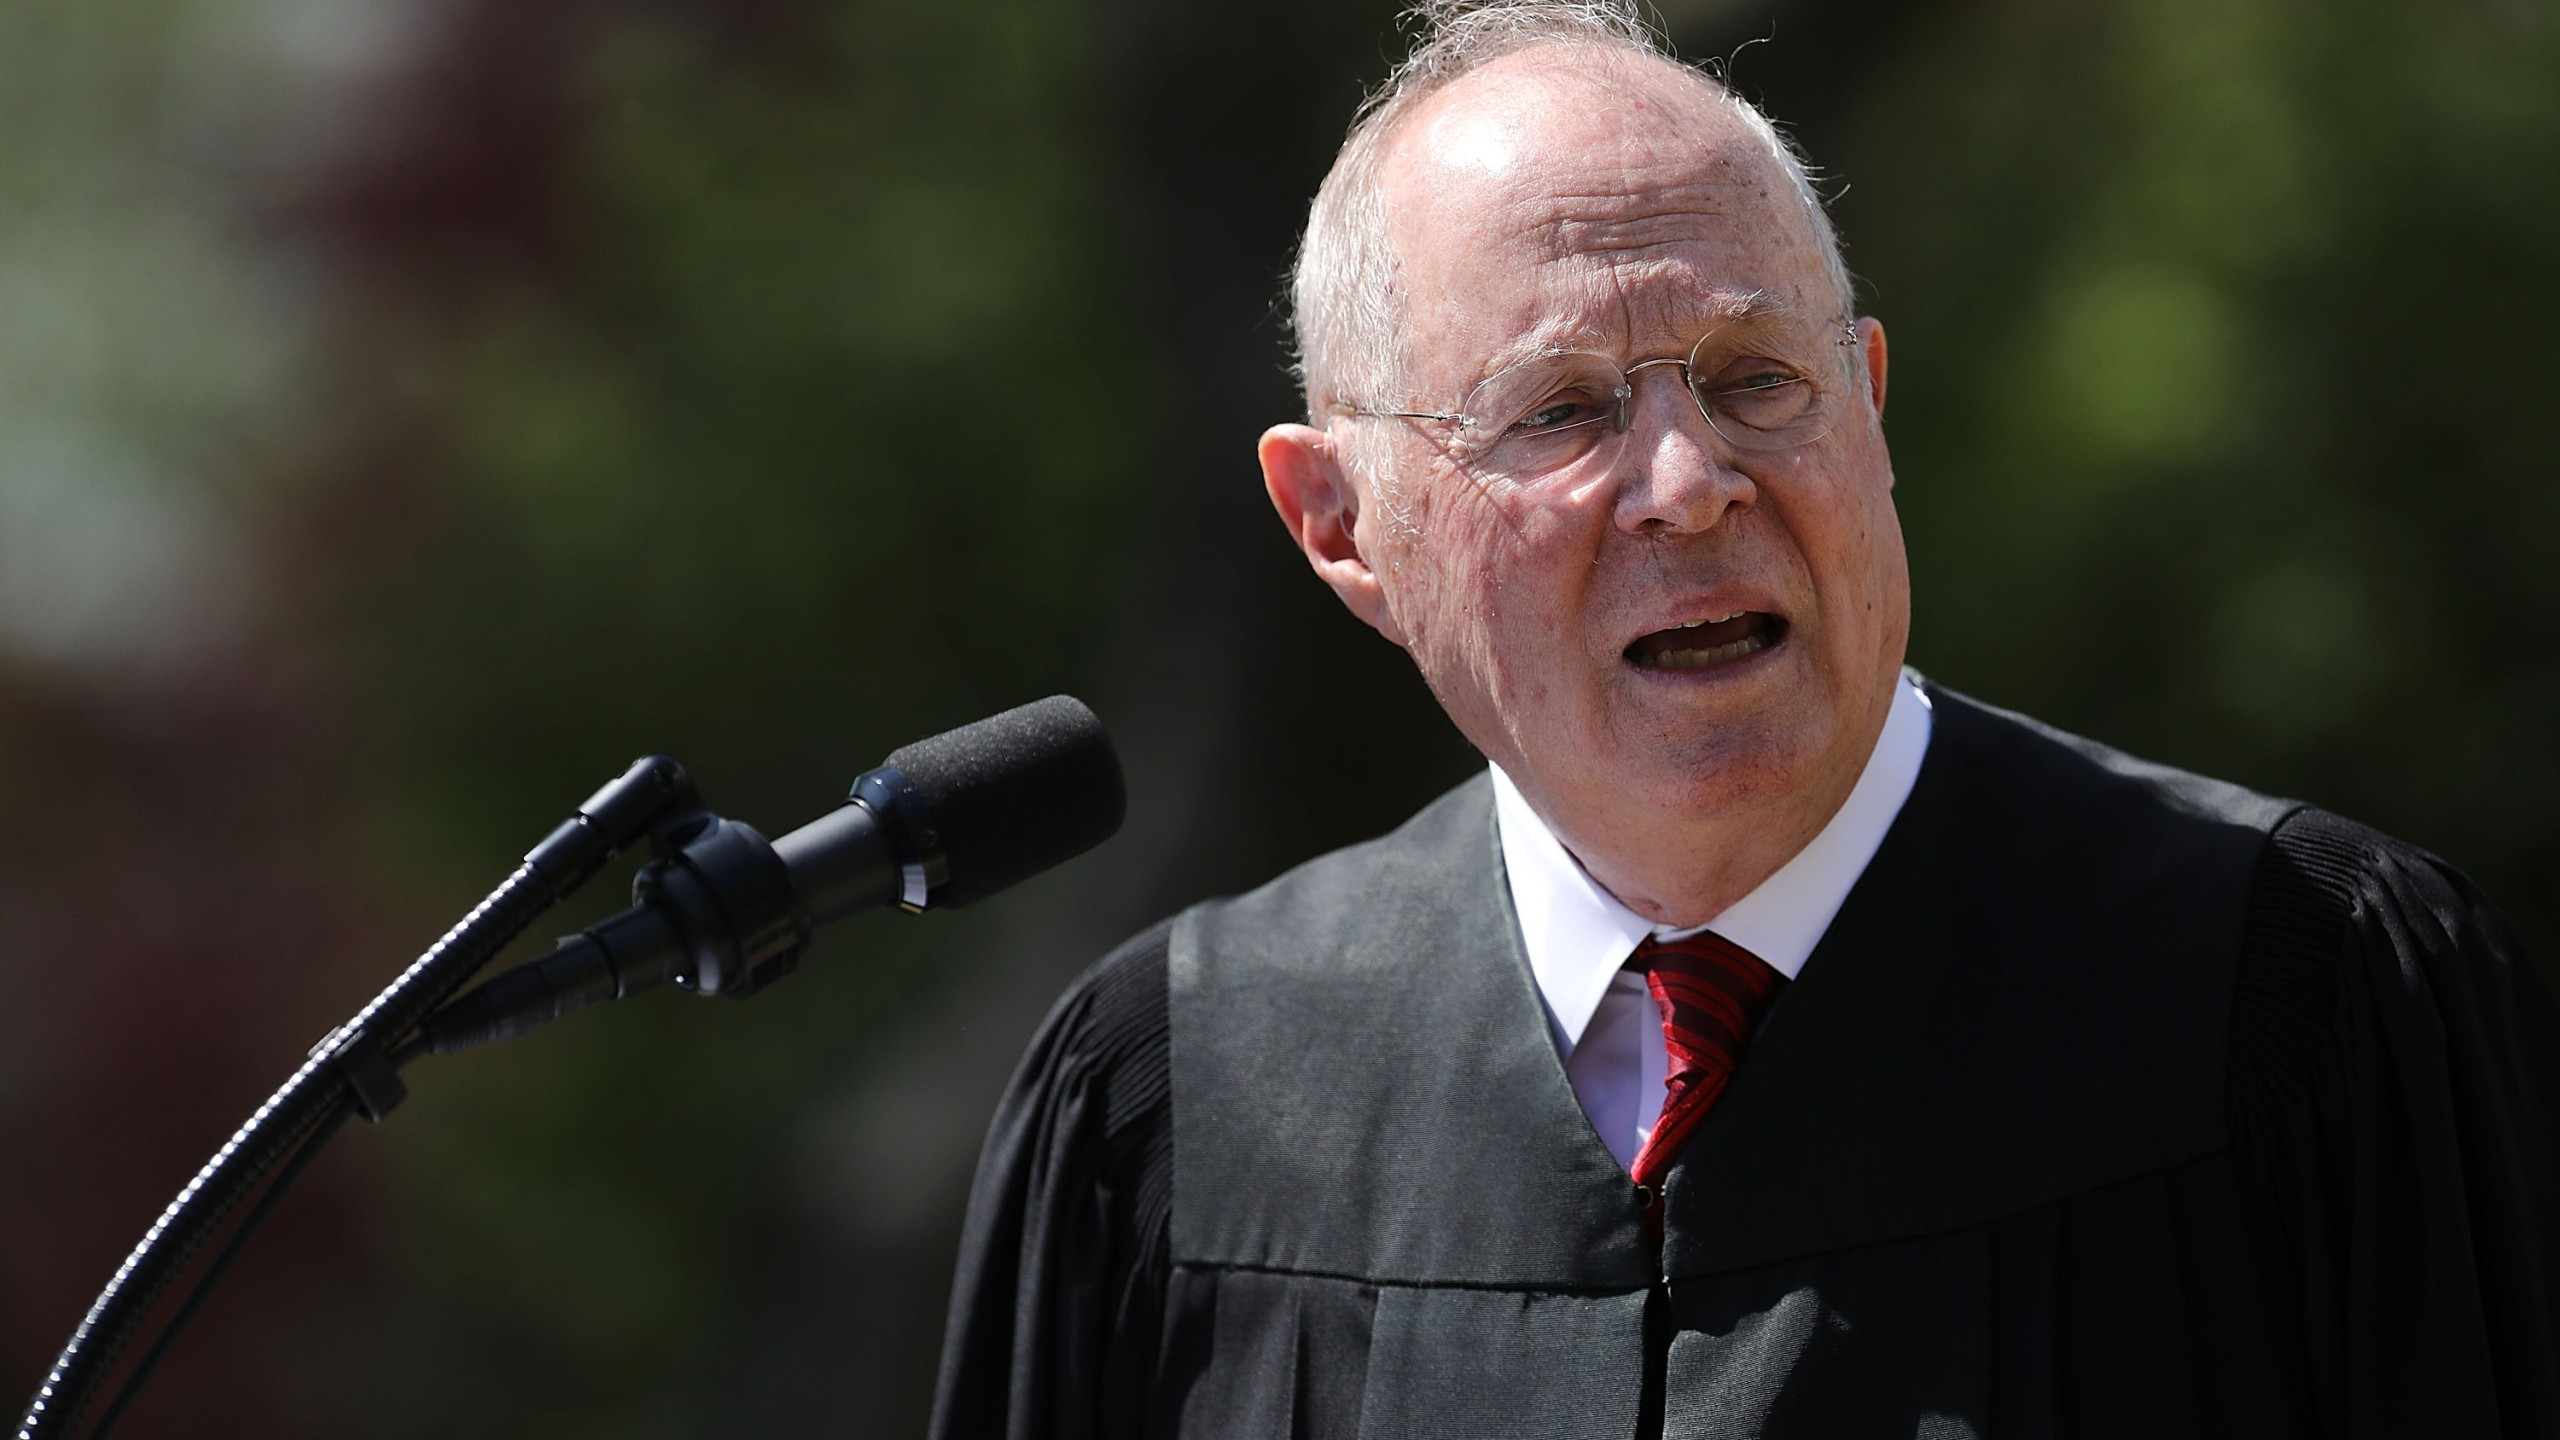 U.S. Supreme Court Associate Justice Anthony Kennedy delivers remarks before administering the judicial oath to Judge Neil Gorsuch during a ceremony in the Rose Garden at the White House April 10, 2017 in Washington, DC. (Credit: Chip Somodevilla/Getty Images)